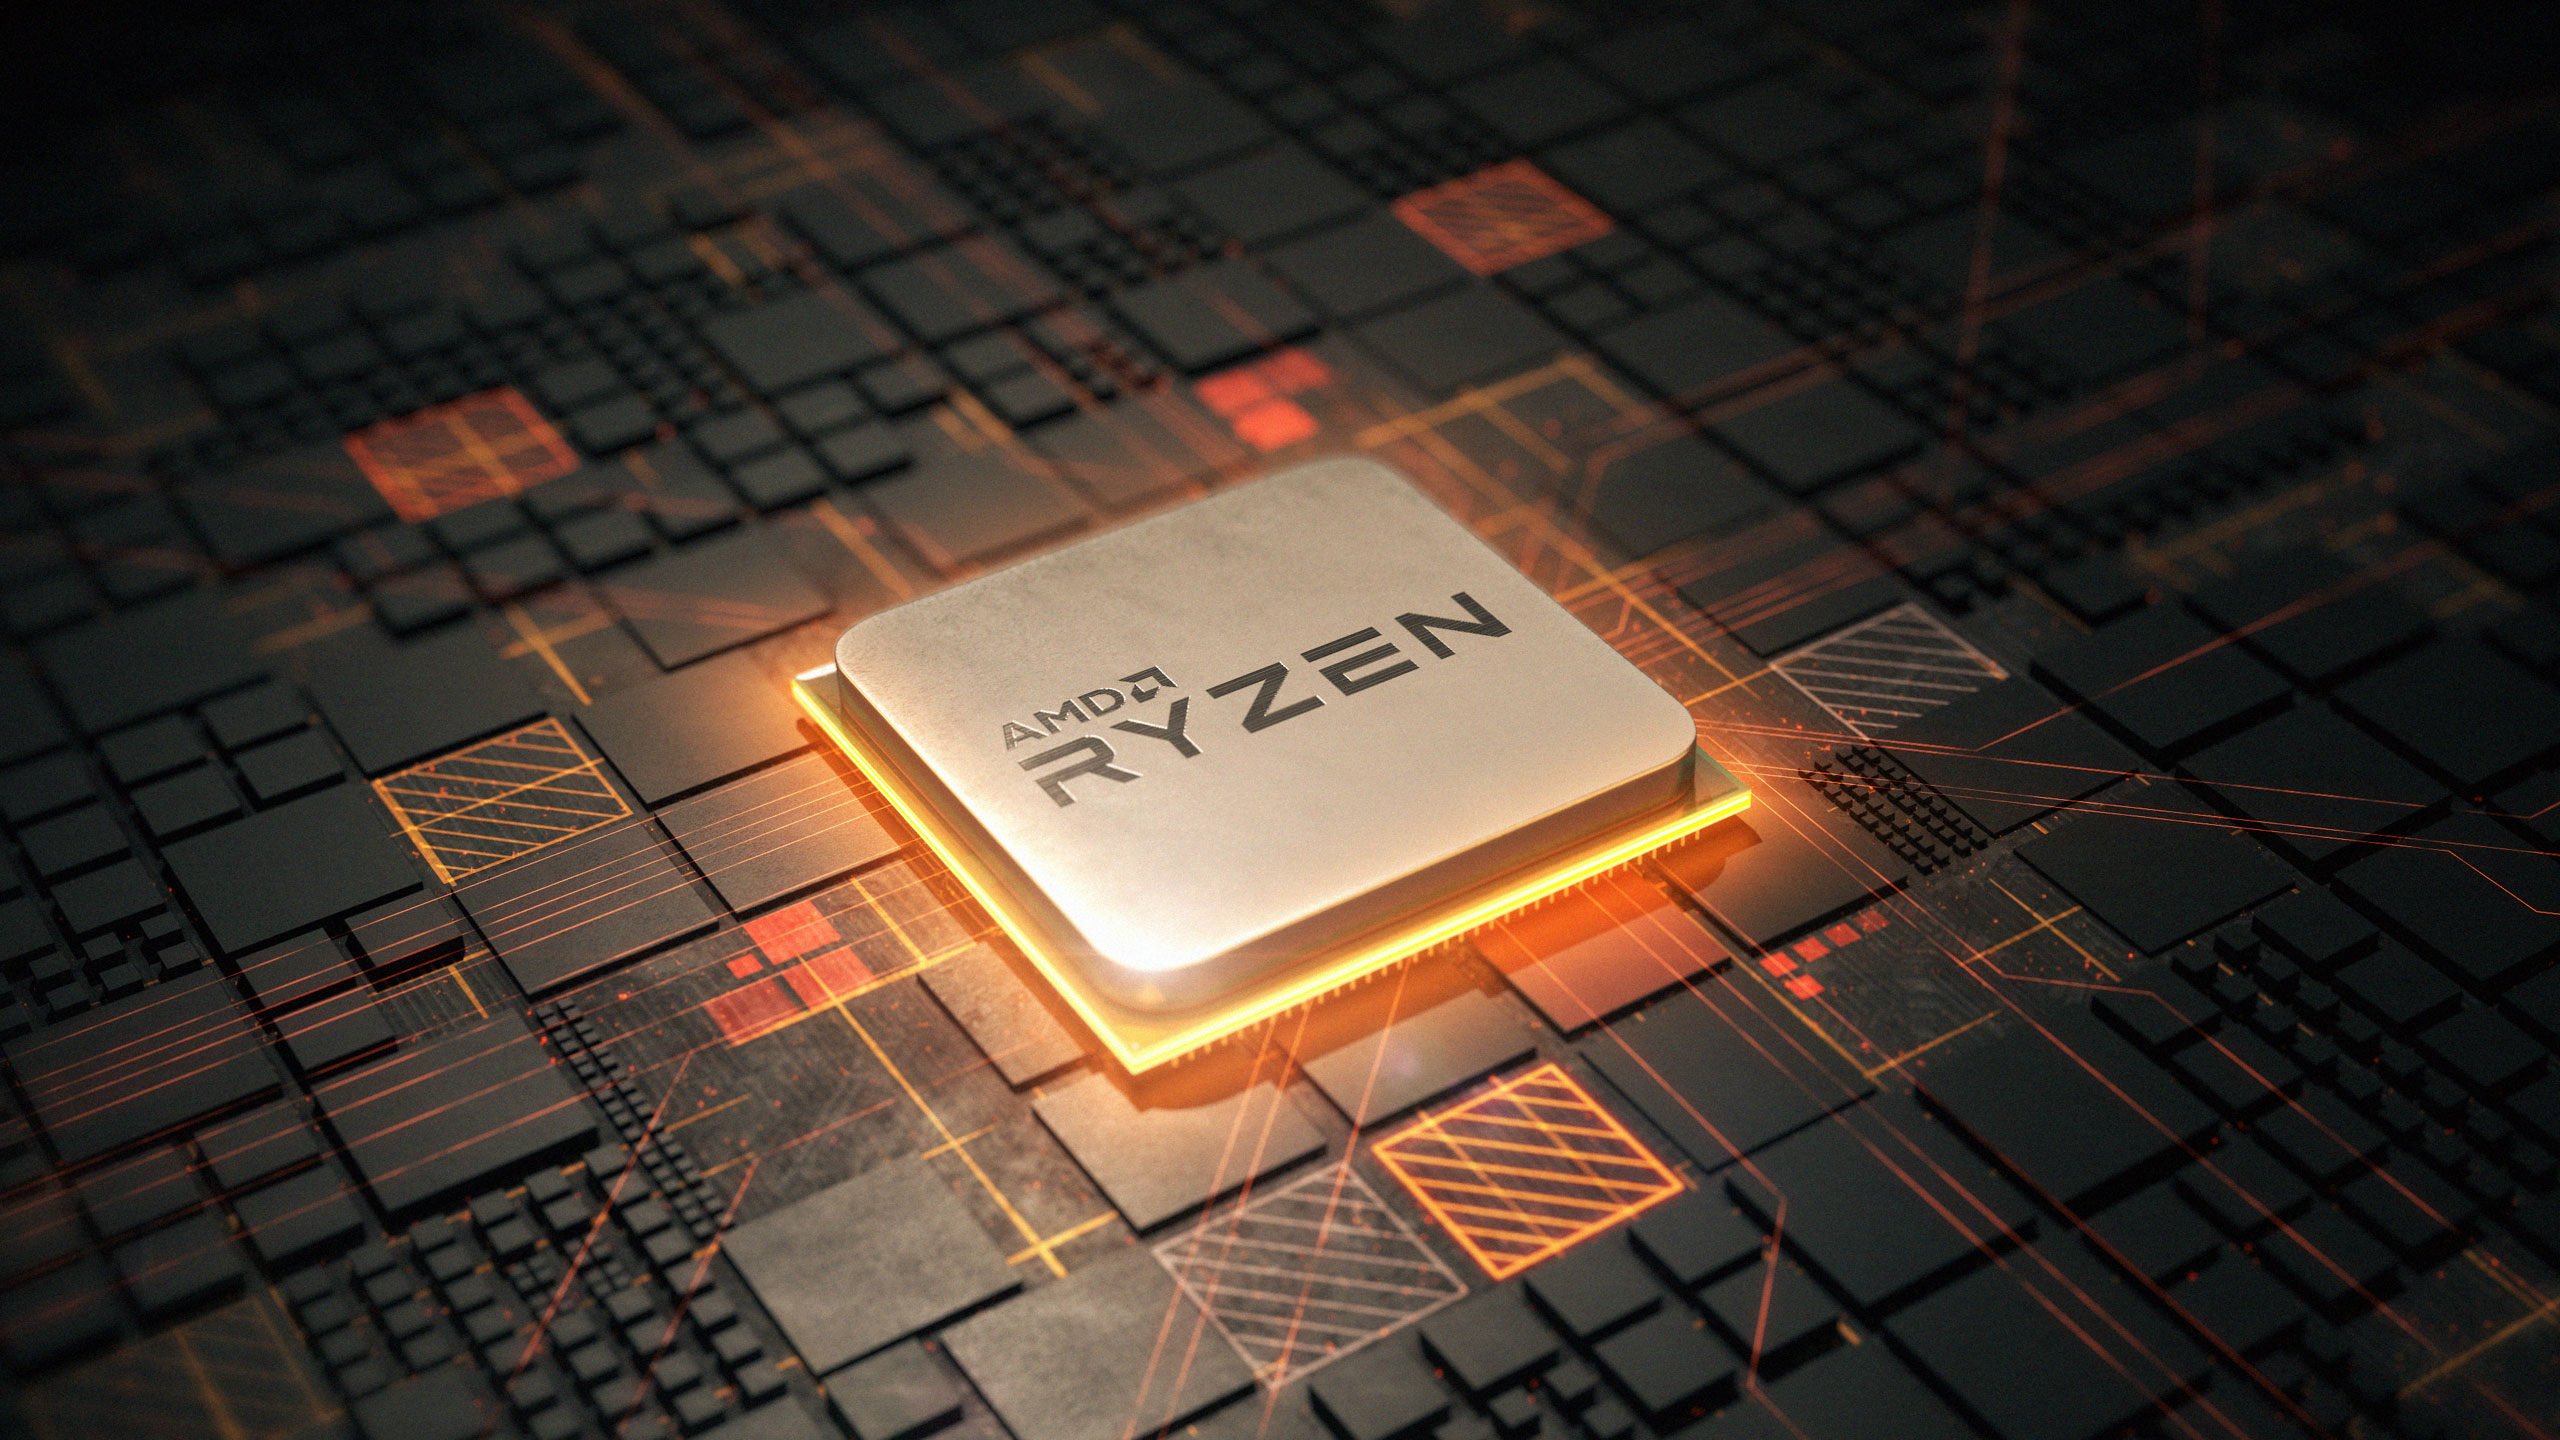 AMD Ryzen 7 2700X is better than its predecessors in every